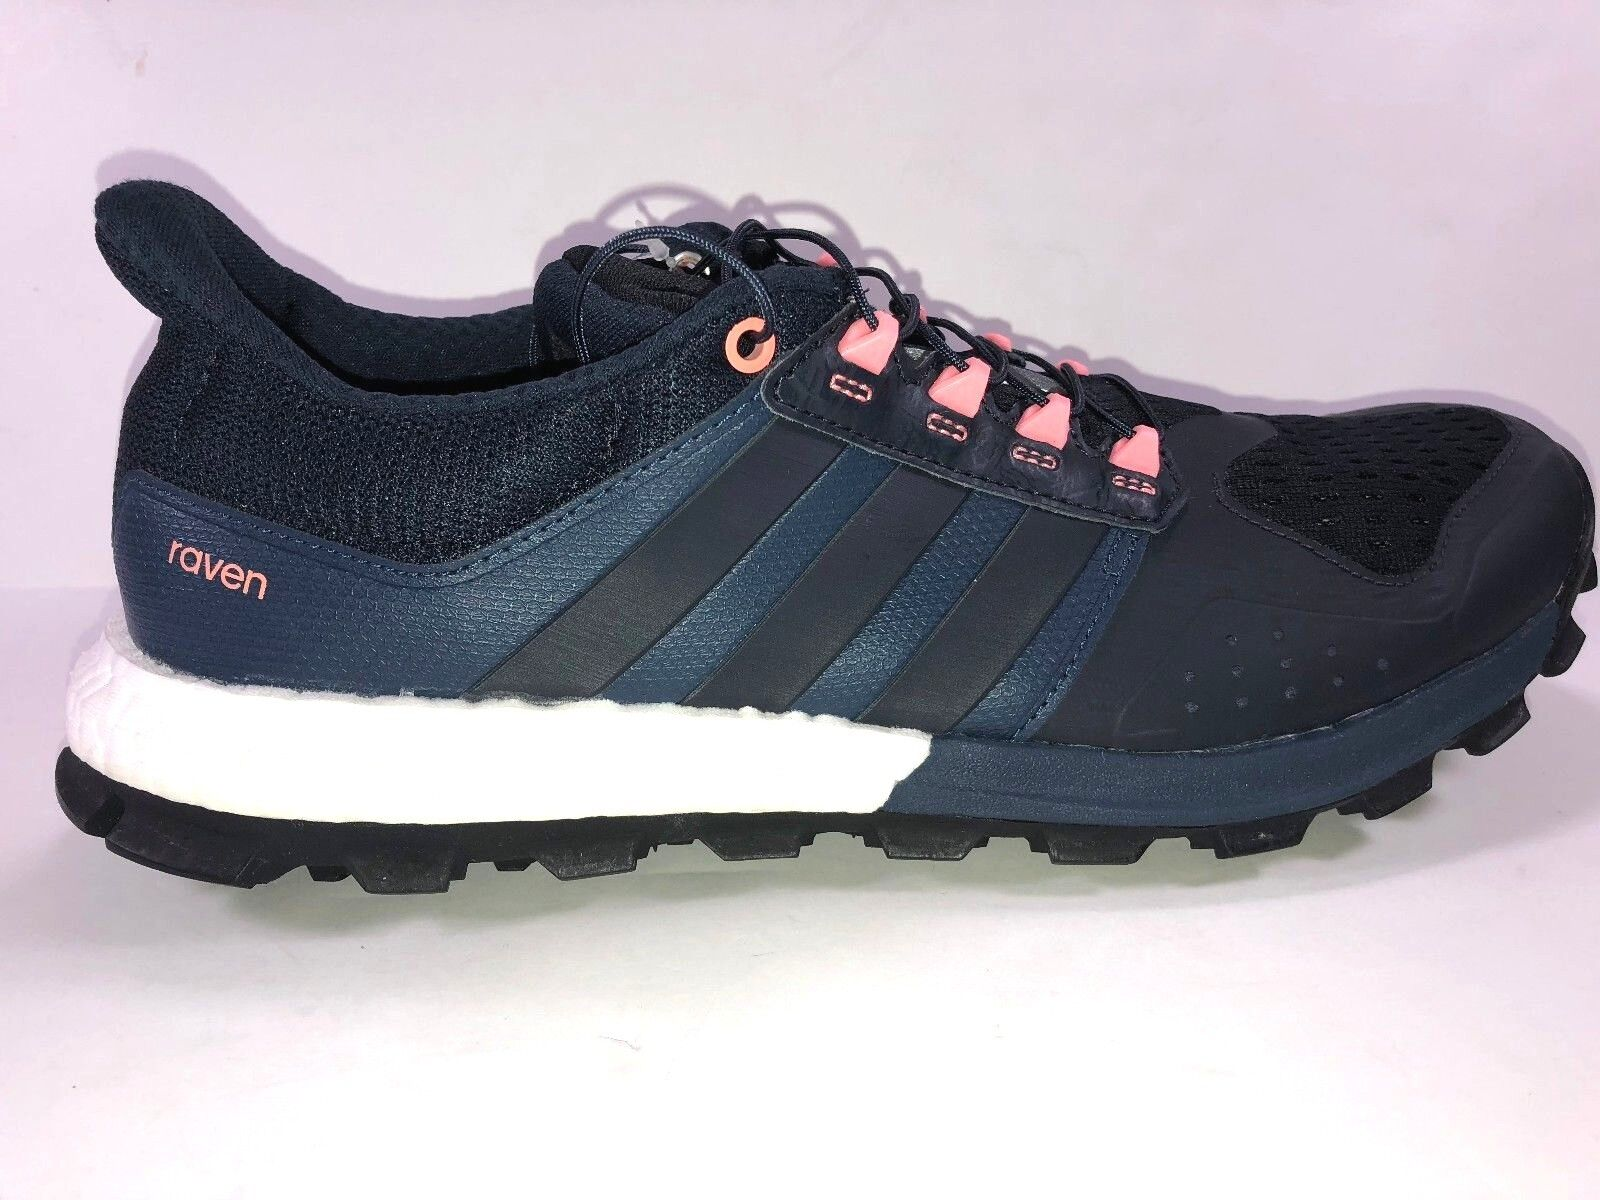 Adidas Women Size 10.5 Adistar Raven Boost Trail Running Shoe Blue & Pink New